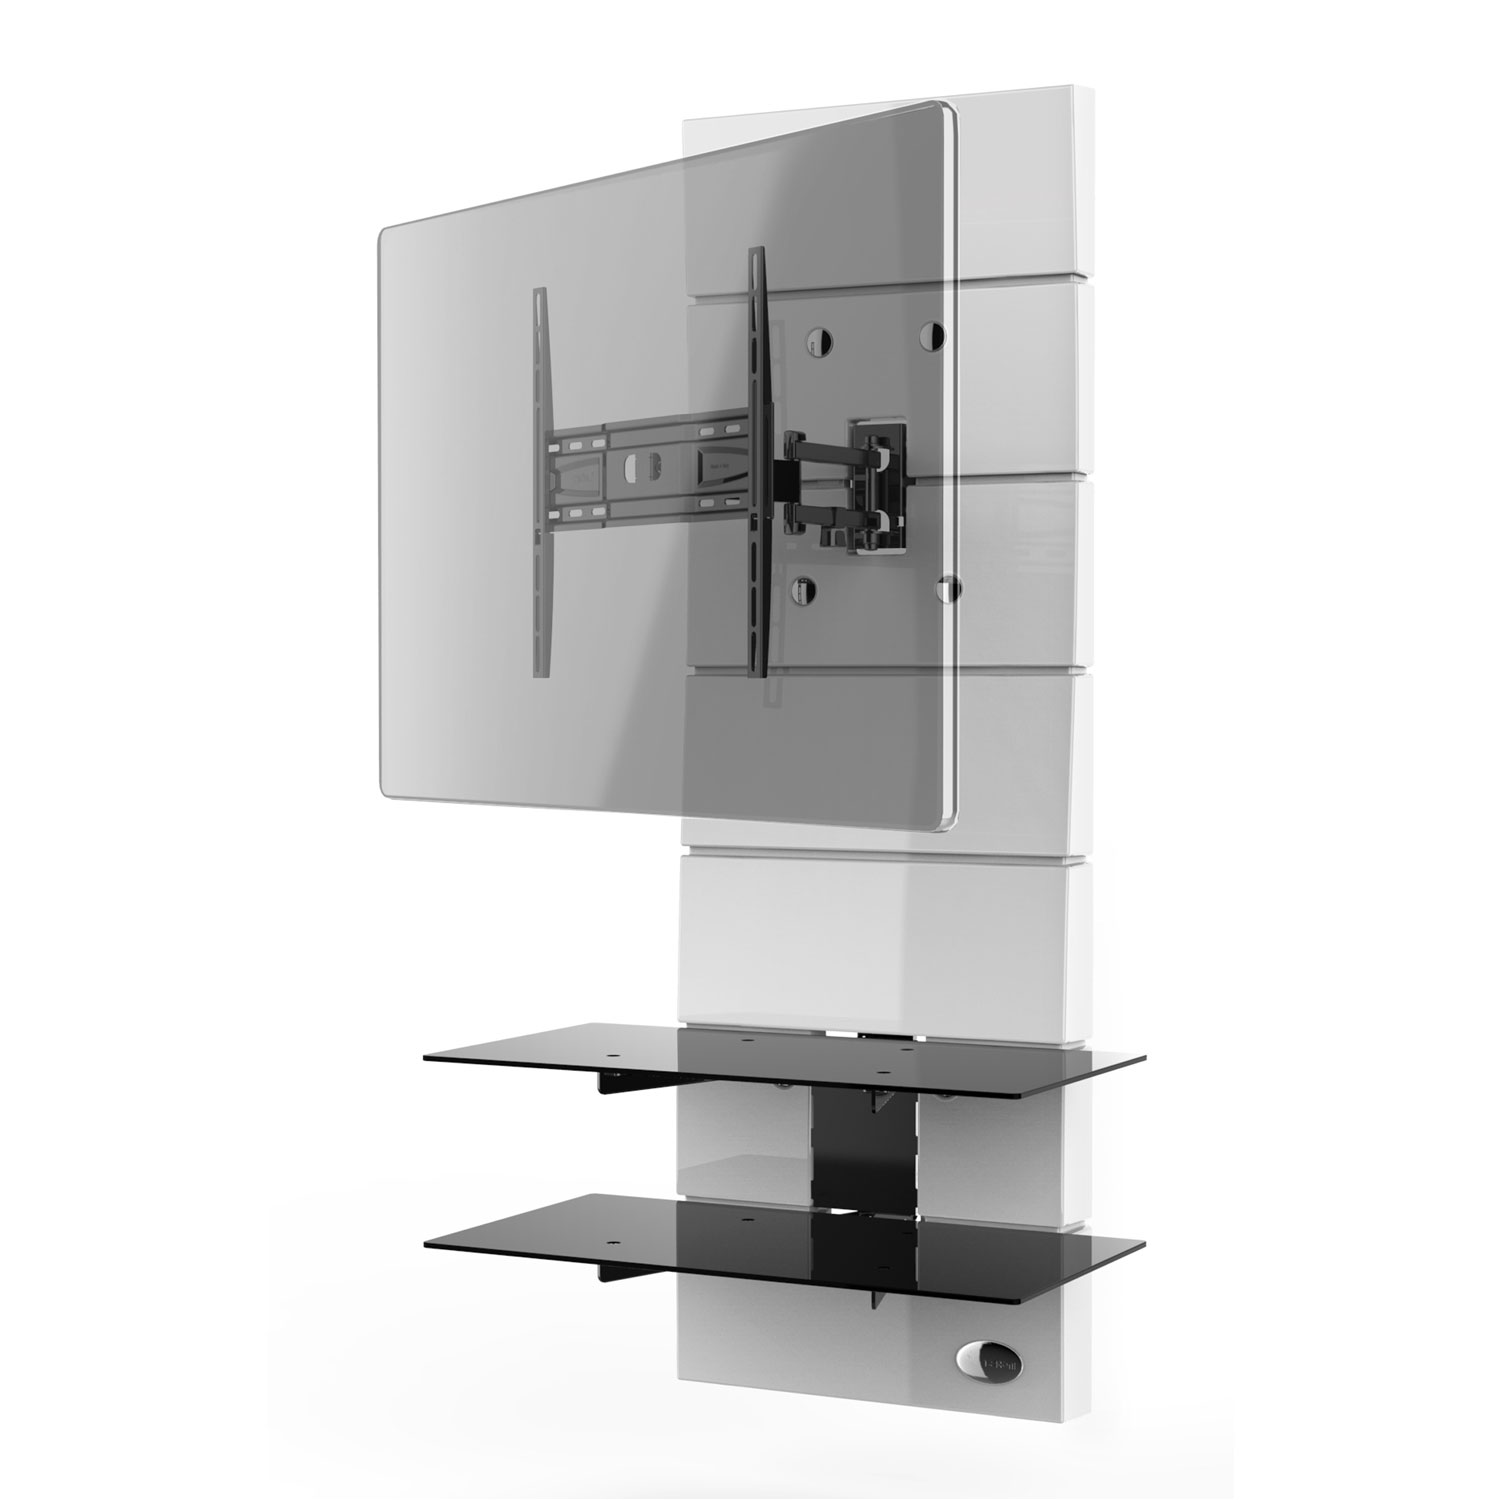 Meliconi ghost design 3000 rotation blanc meuble tv - Support tv mural avec etagere ...